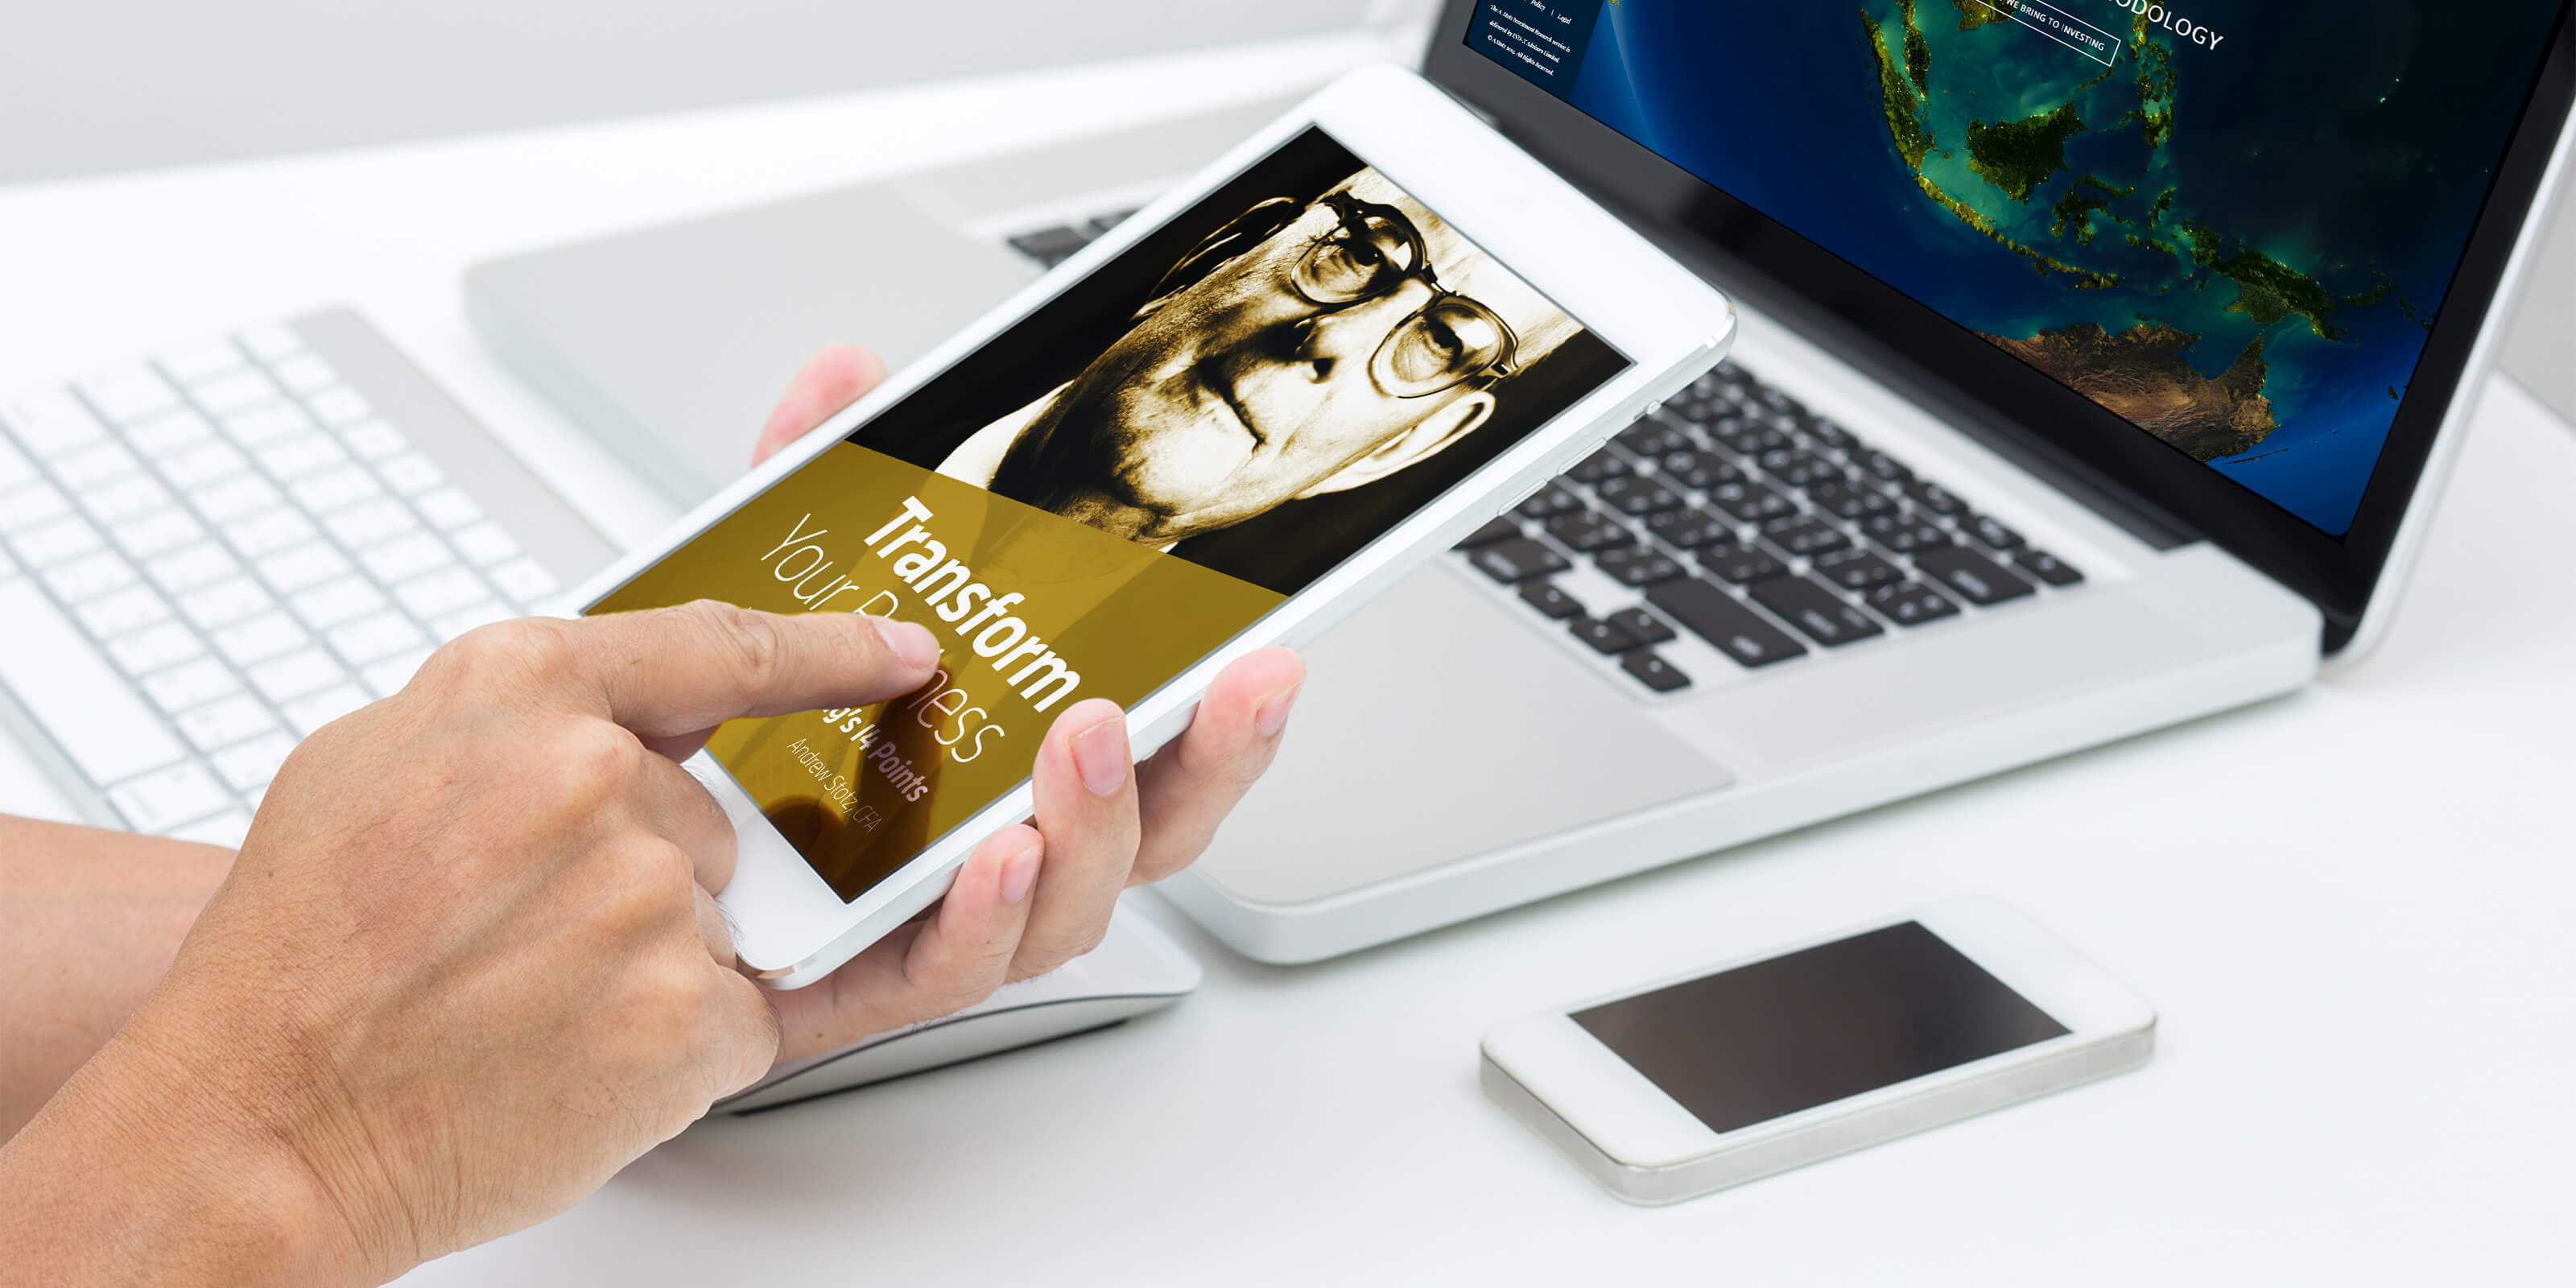 Man hands holding tablet  with laptop computer background